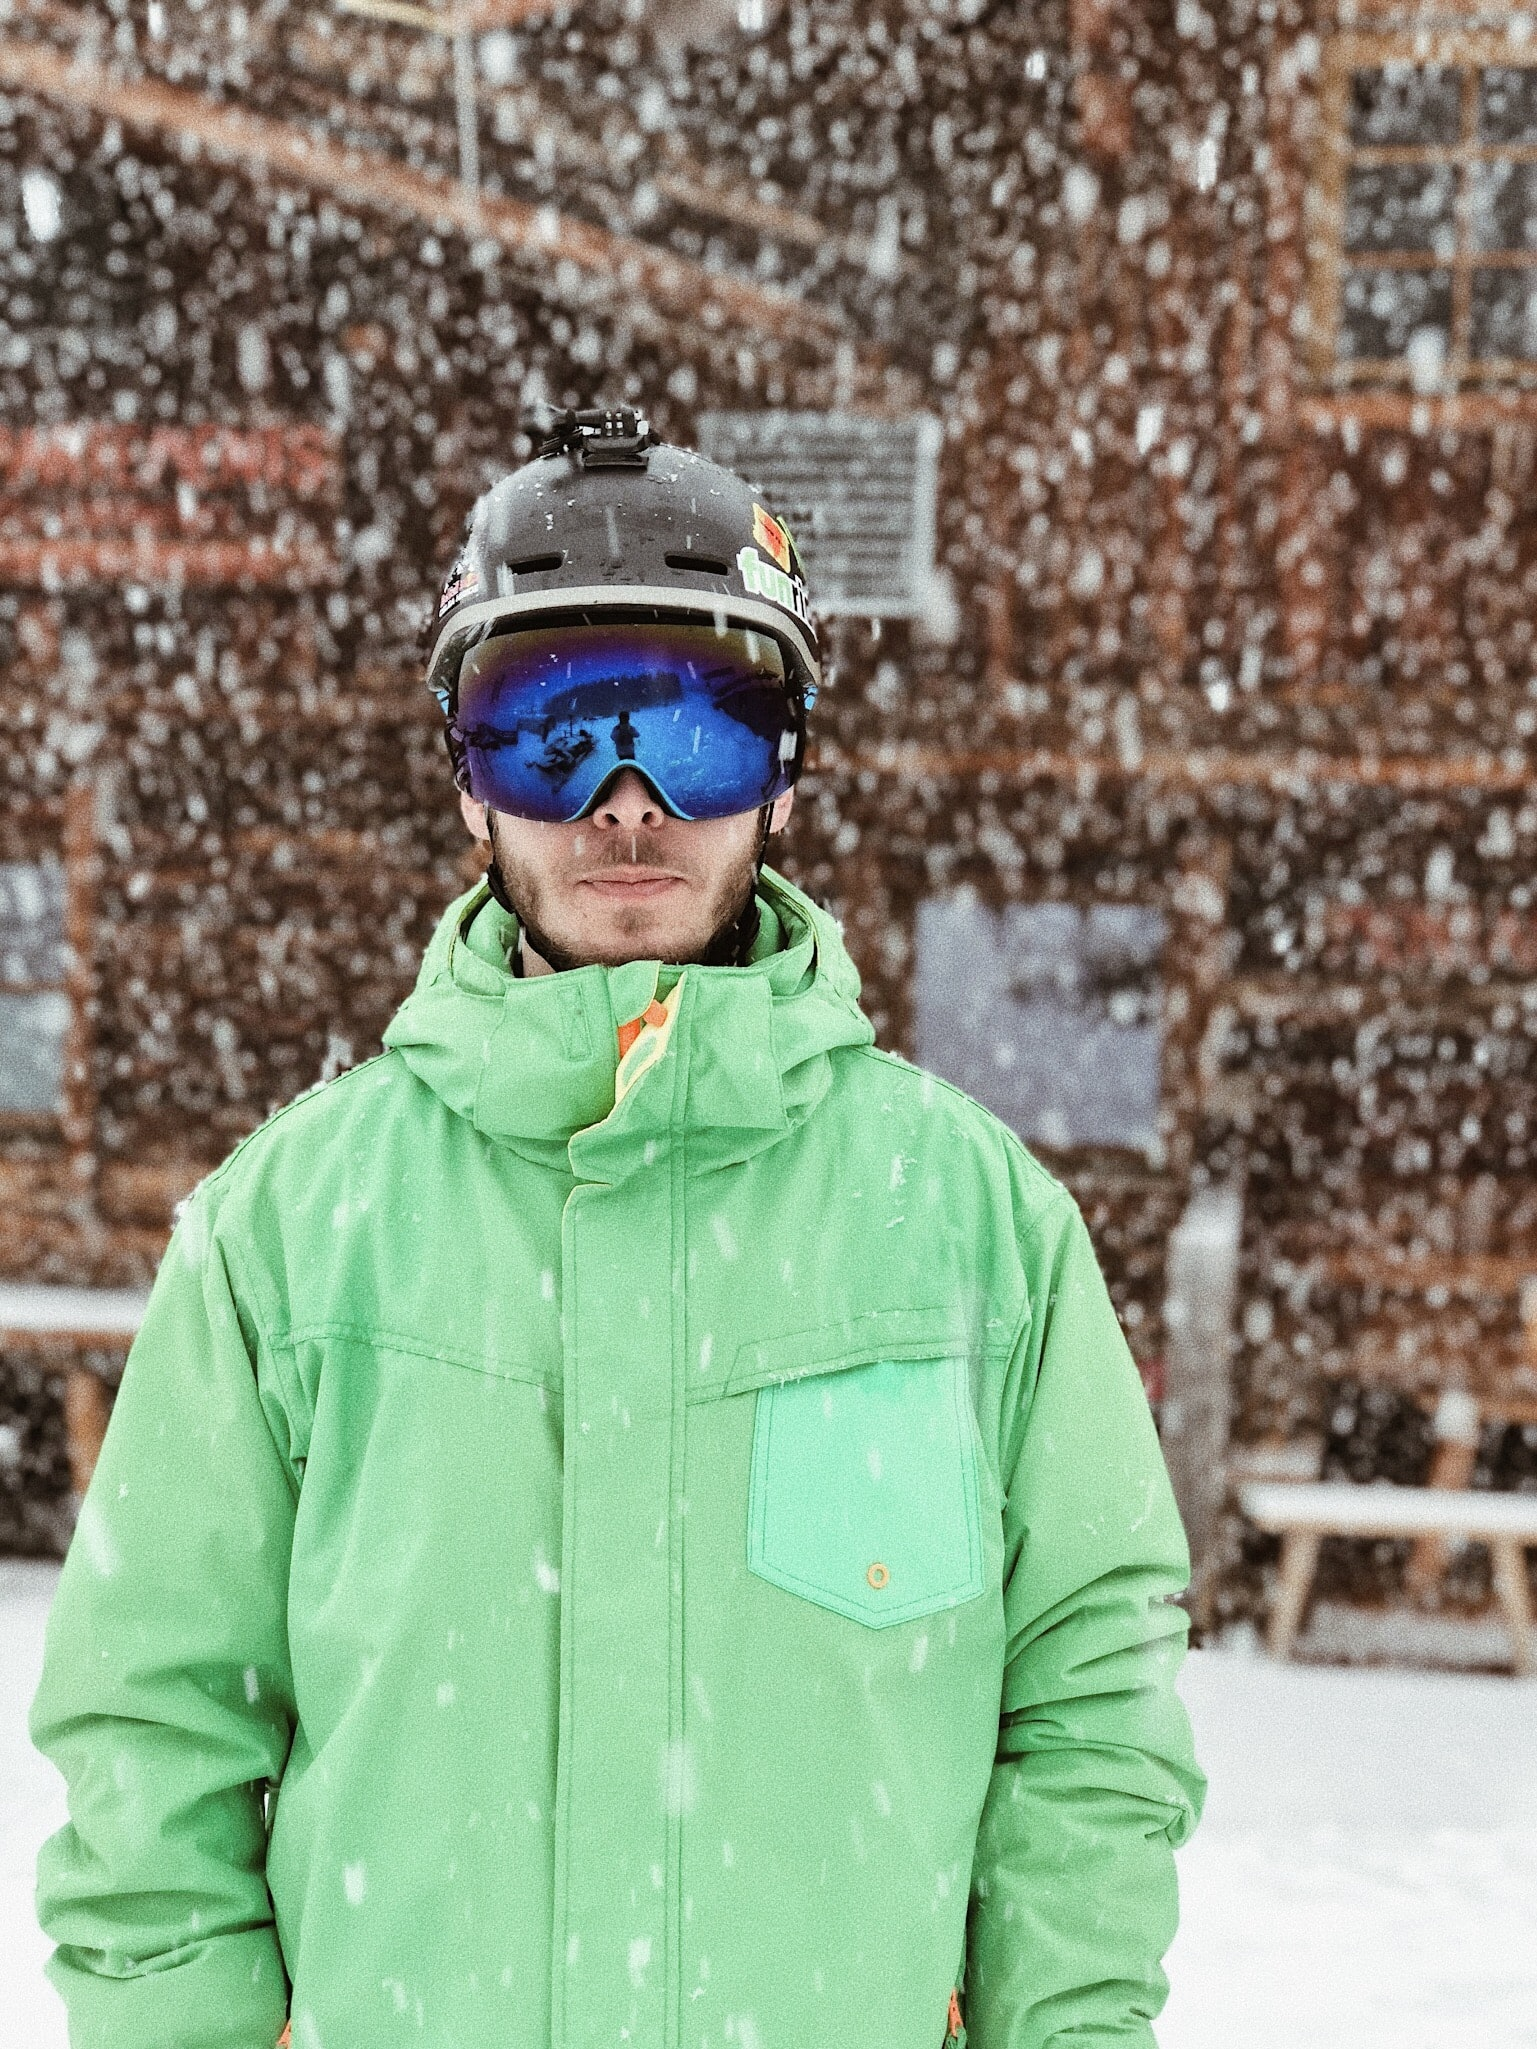 man in green zip-up hooded jacket black helmet and black goggles standing on snow during daytime